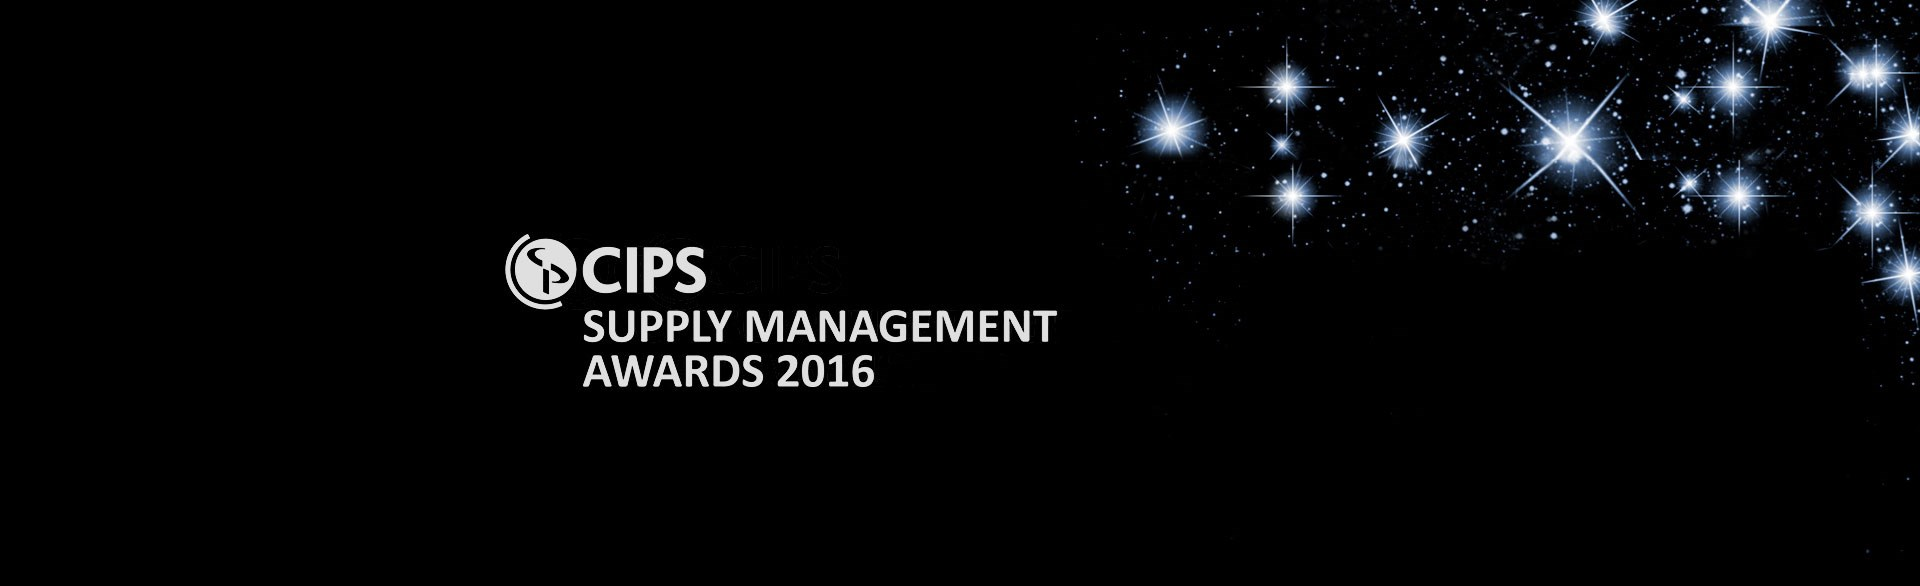 CIPS Supply Management Awards 2016